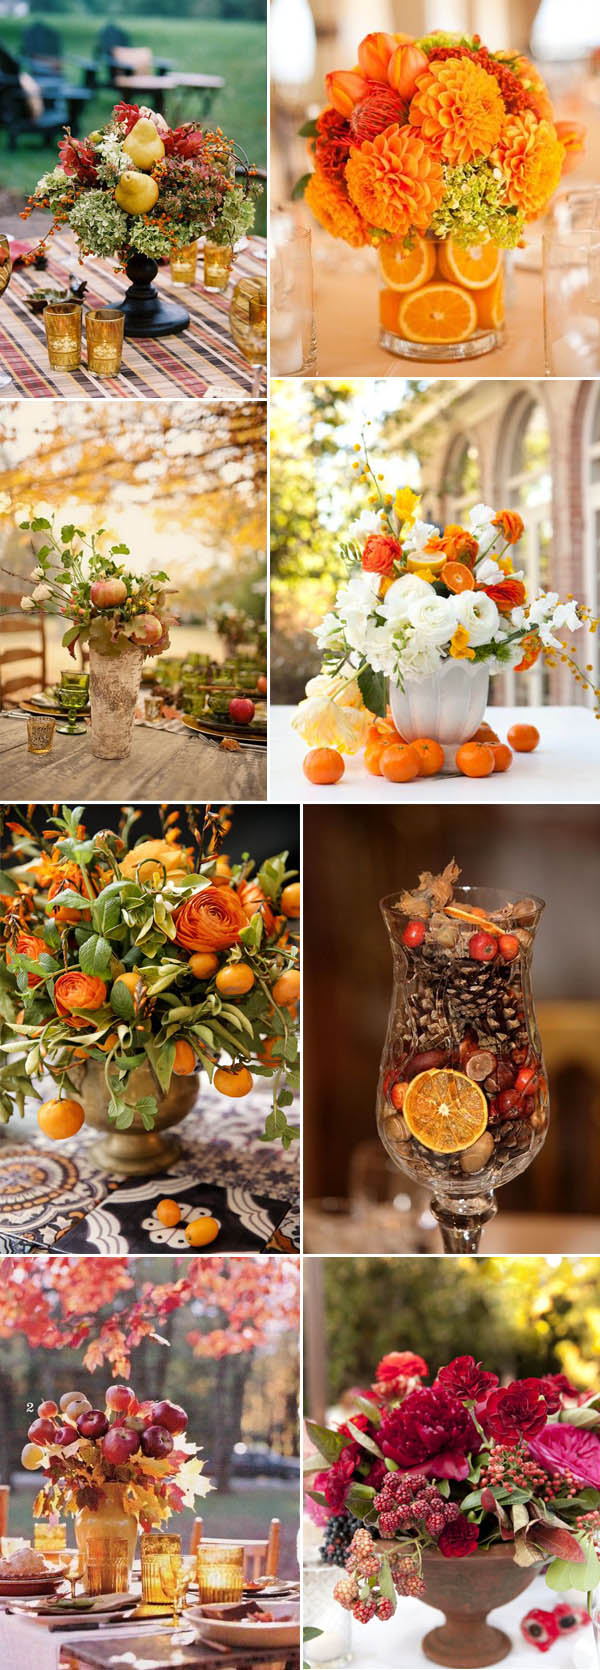 creative-fall-wedding-centerpieces-ideas-with-fruit